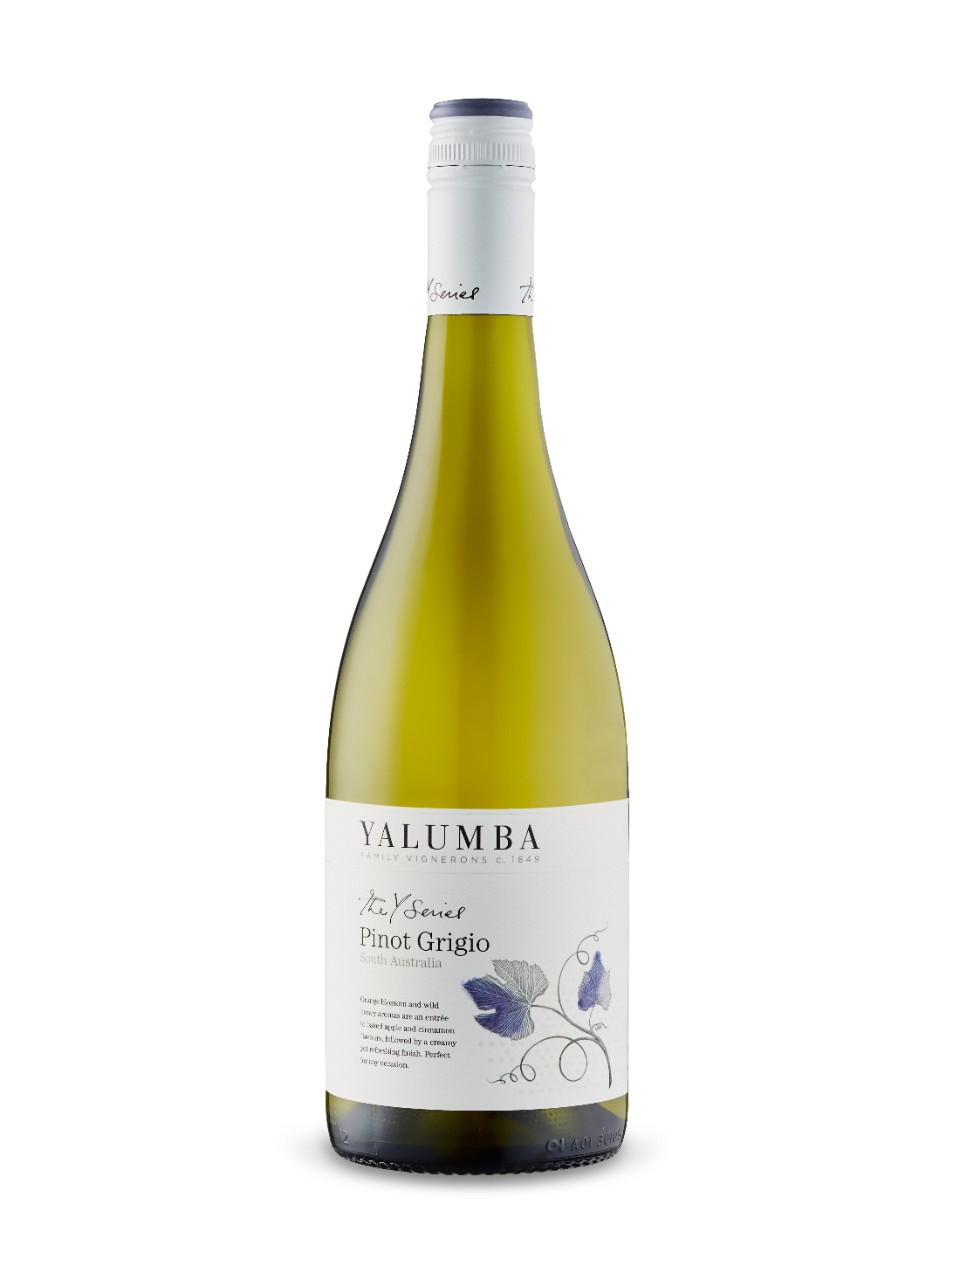 Image for Yalumba Y Series Pinot Grigio 2015 from LCBO